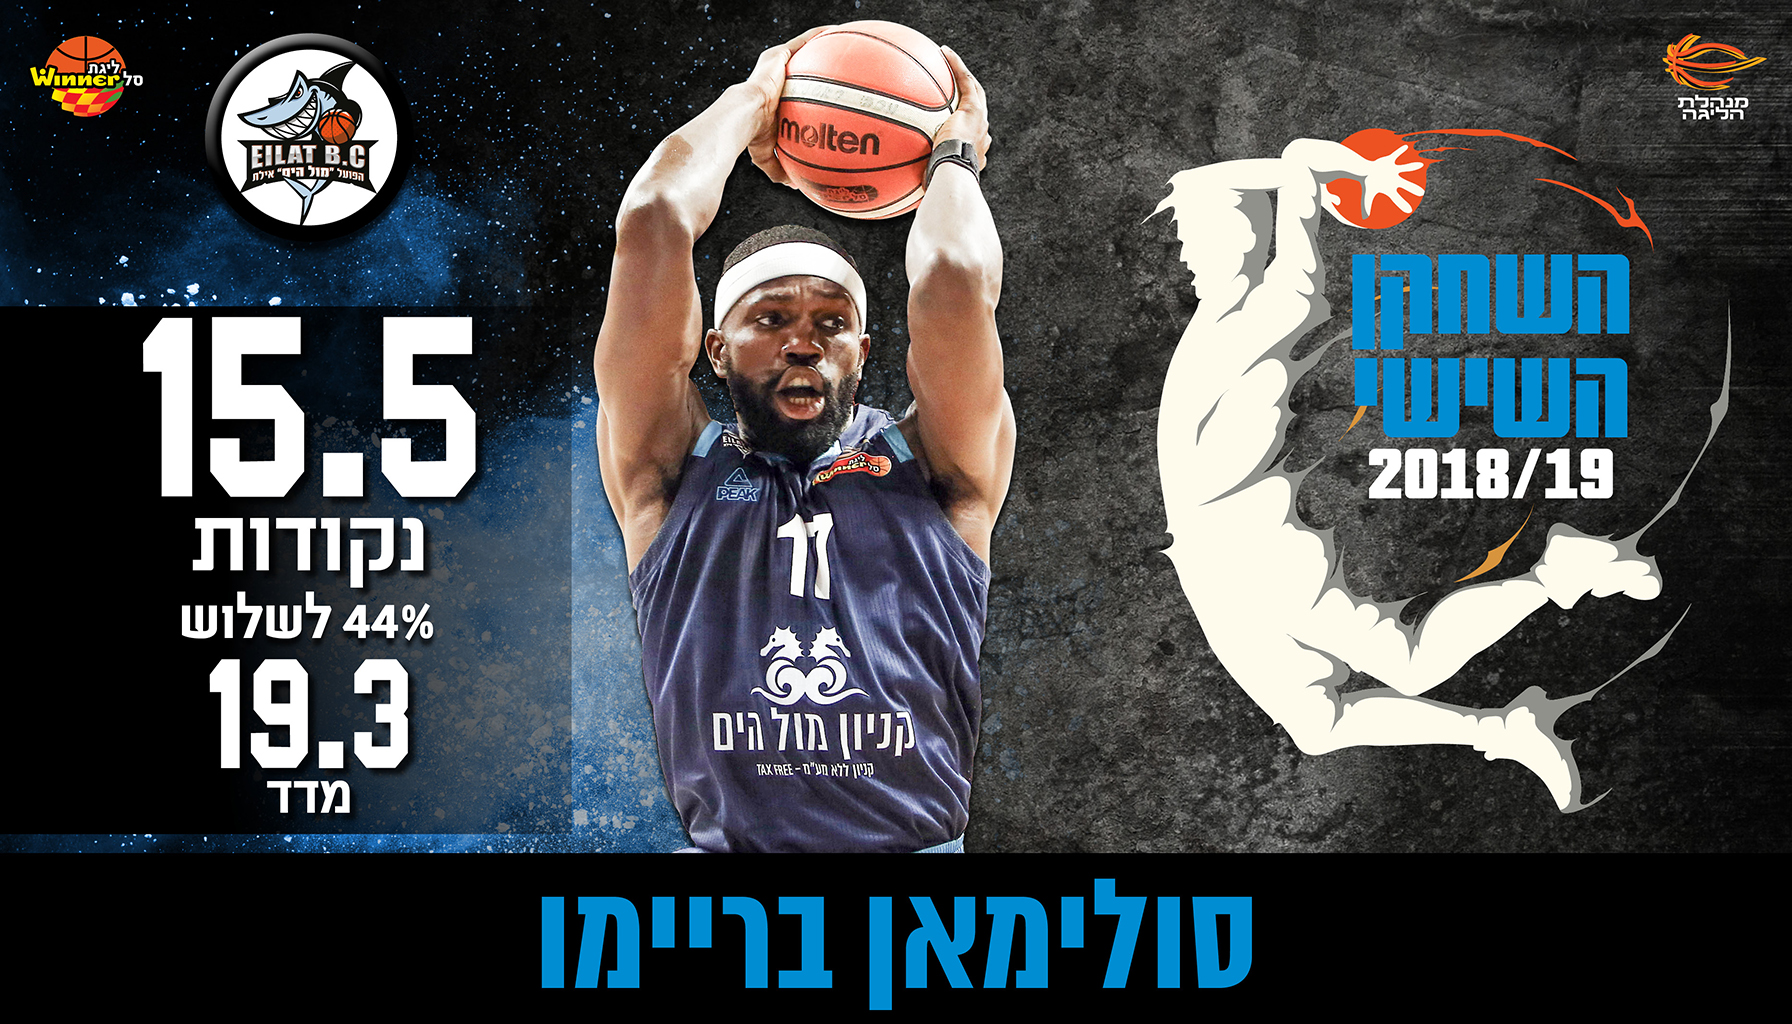 6th Player of the Year: Suleiman Braimoh